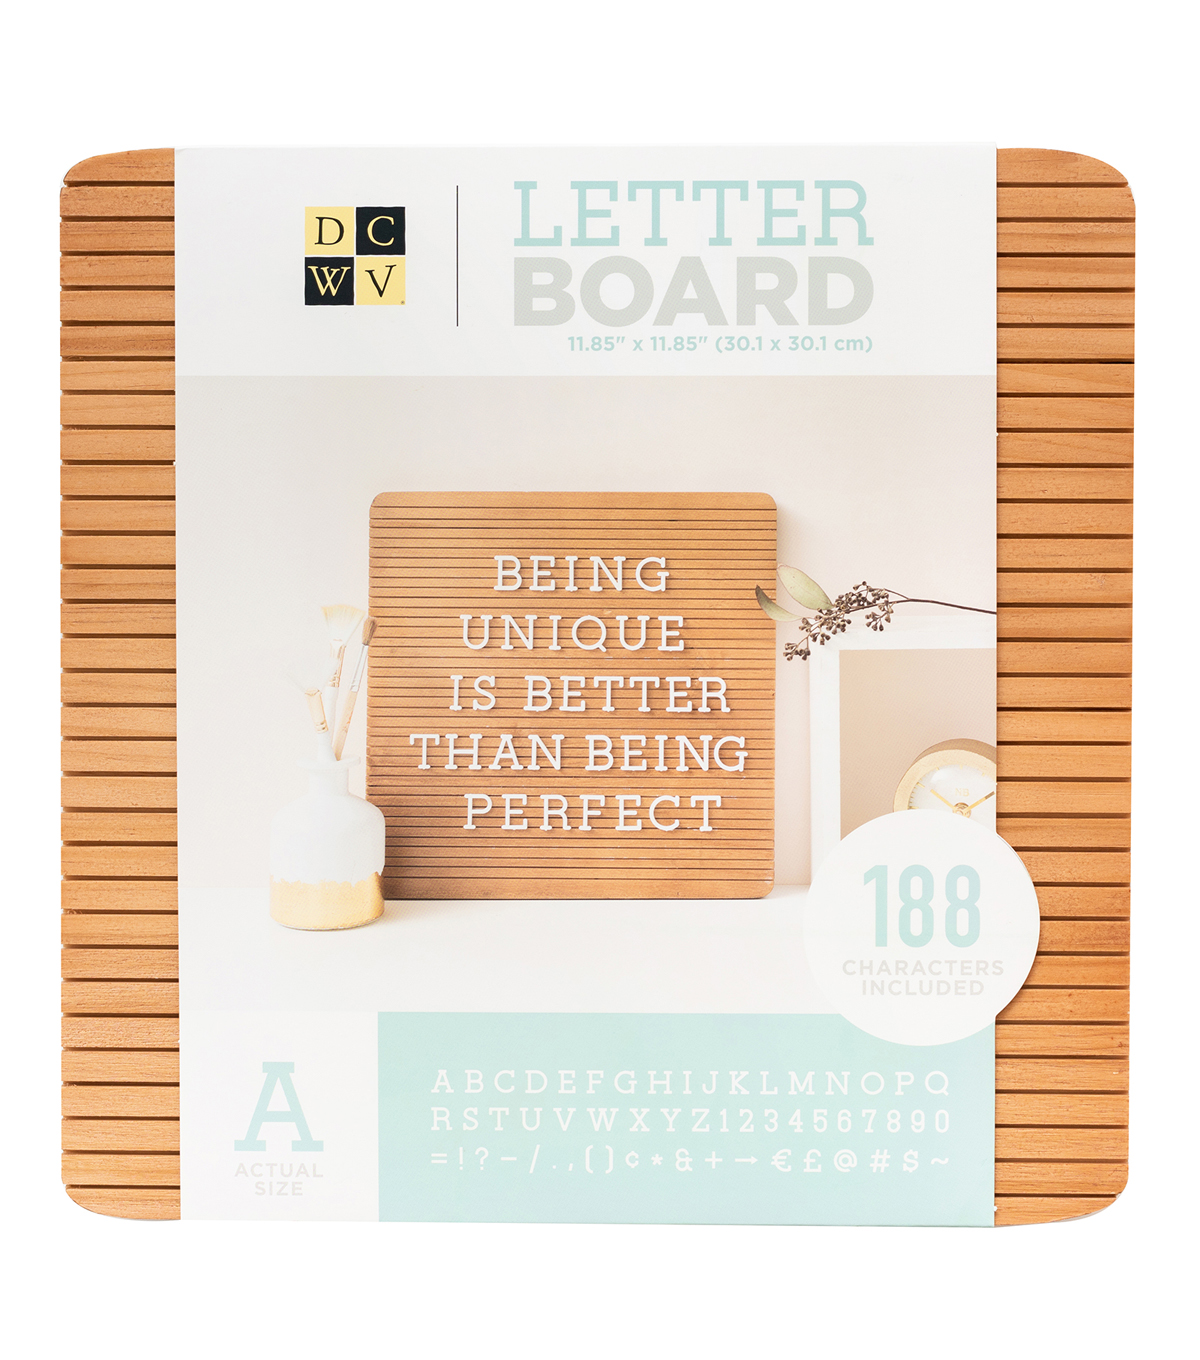 DCWV Letterboard 12x12 Real Wood Dark with White Letters